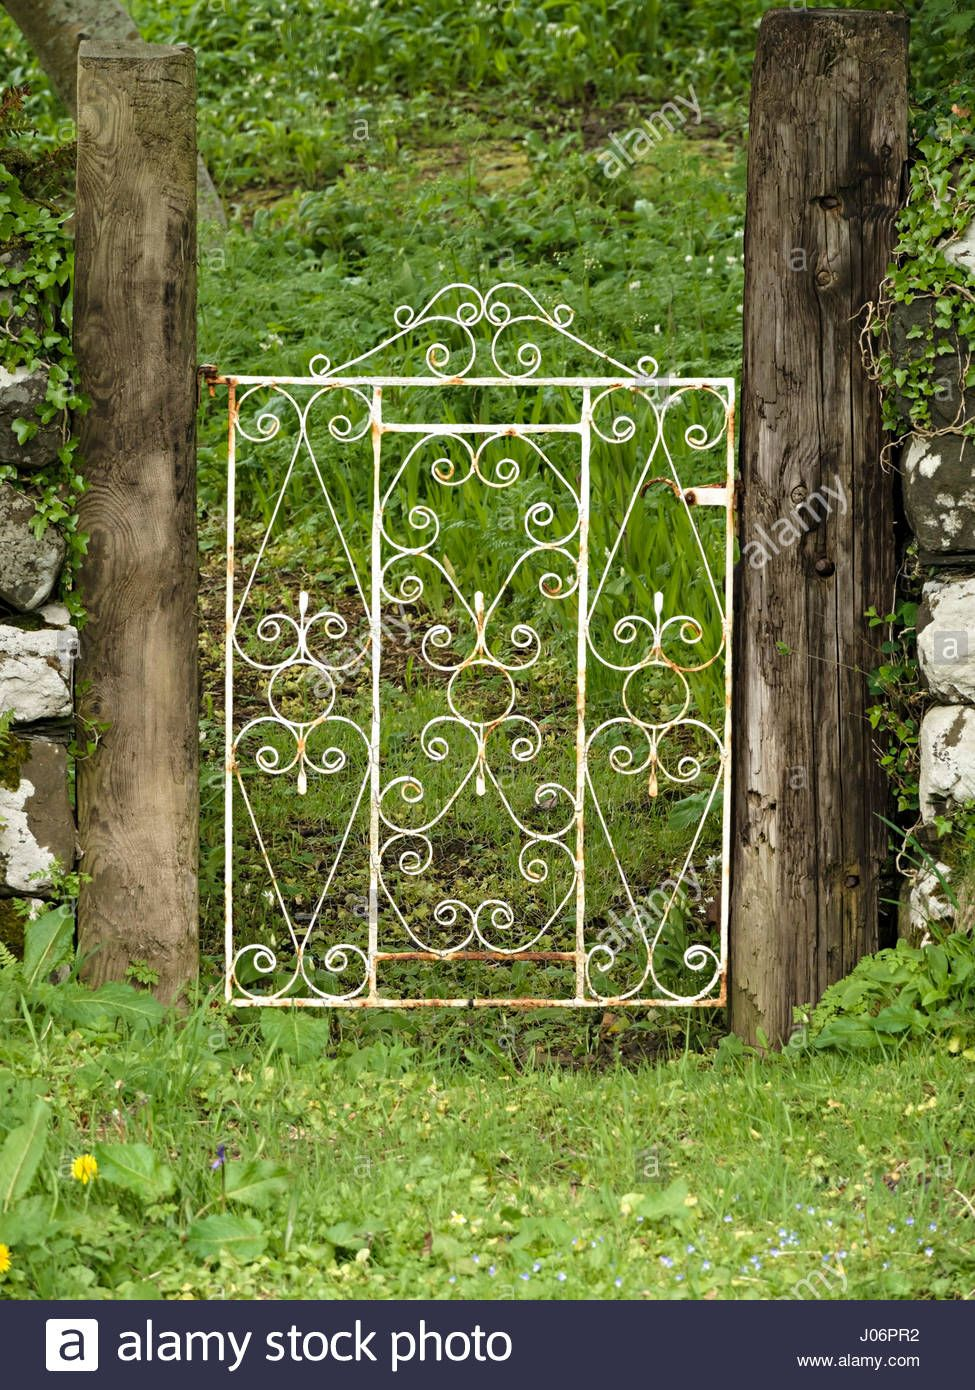 Old White Painted Ornate Wrought Iron Garden Gate With Swirls